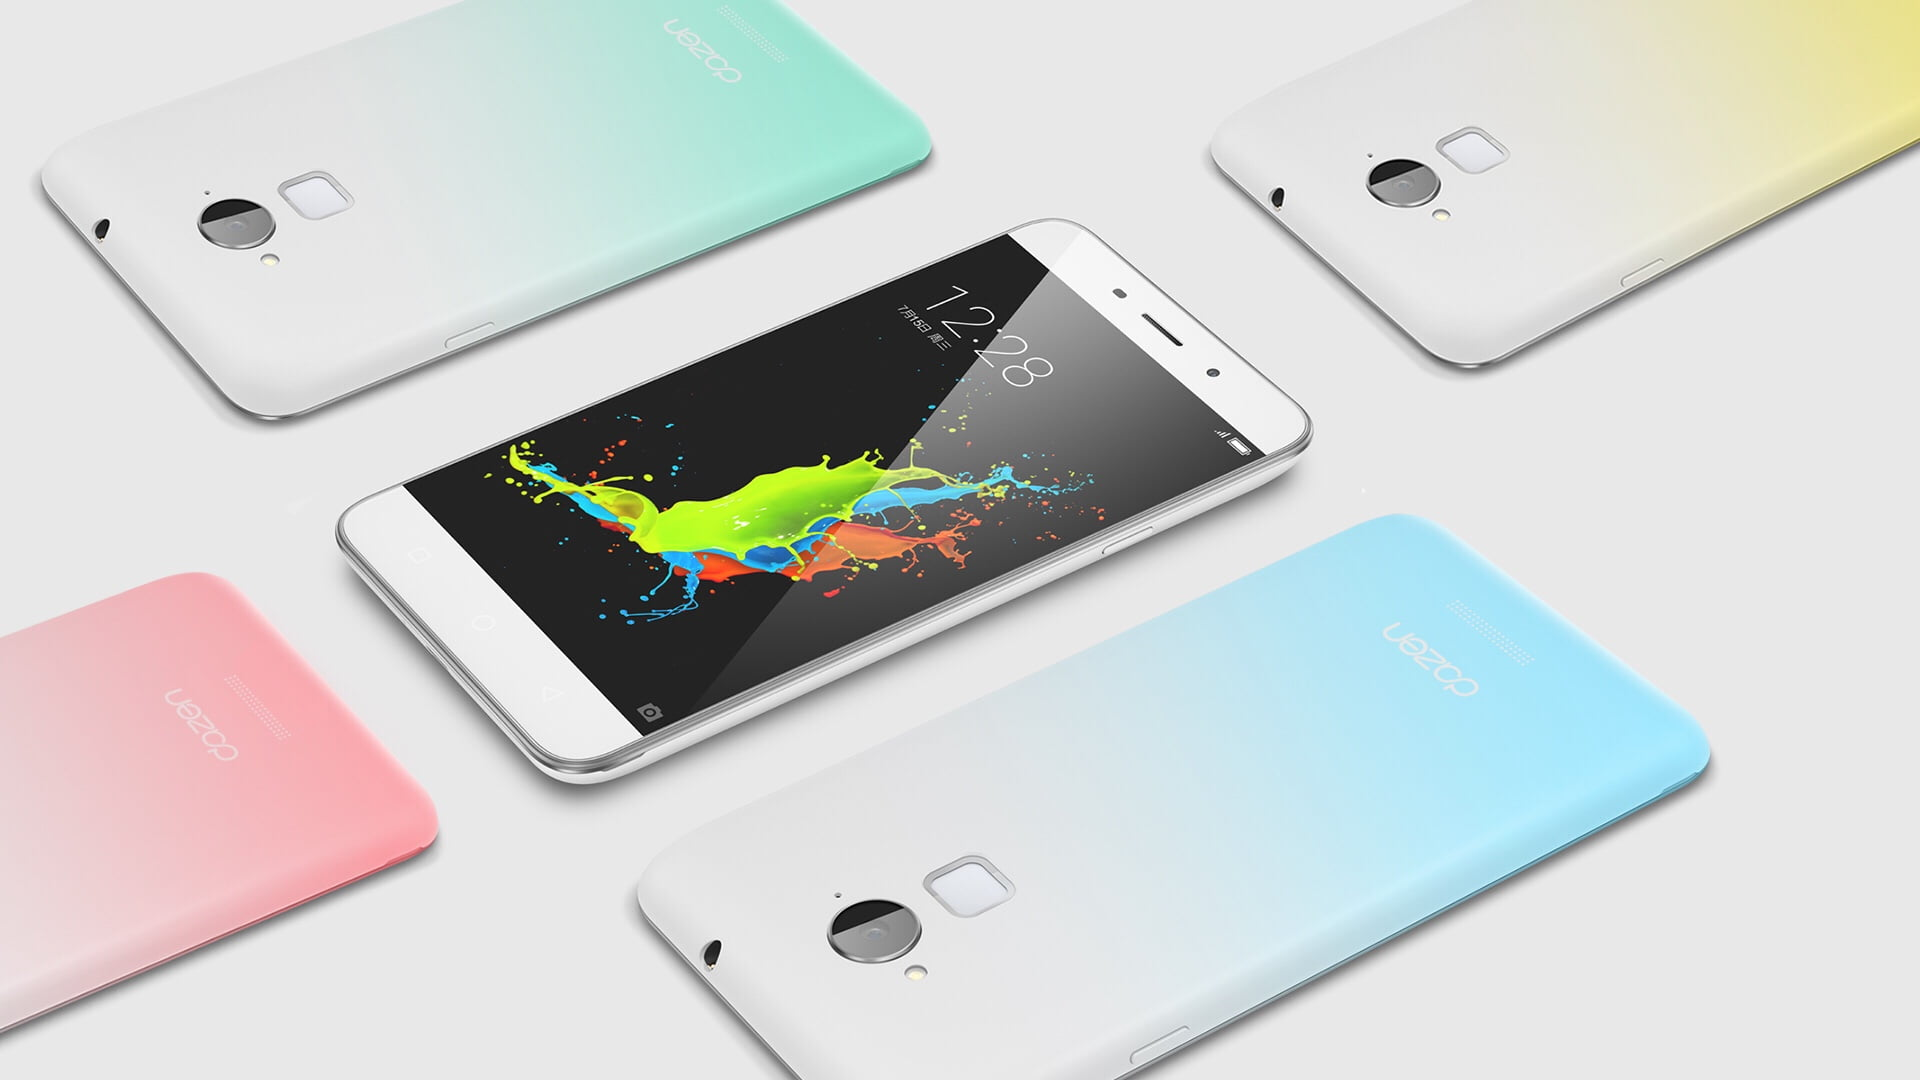 01a9bfd1a1c Coolpad launches 2 budget smartphones in India